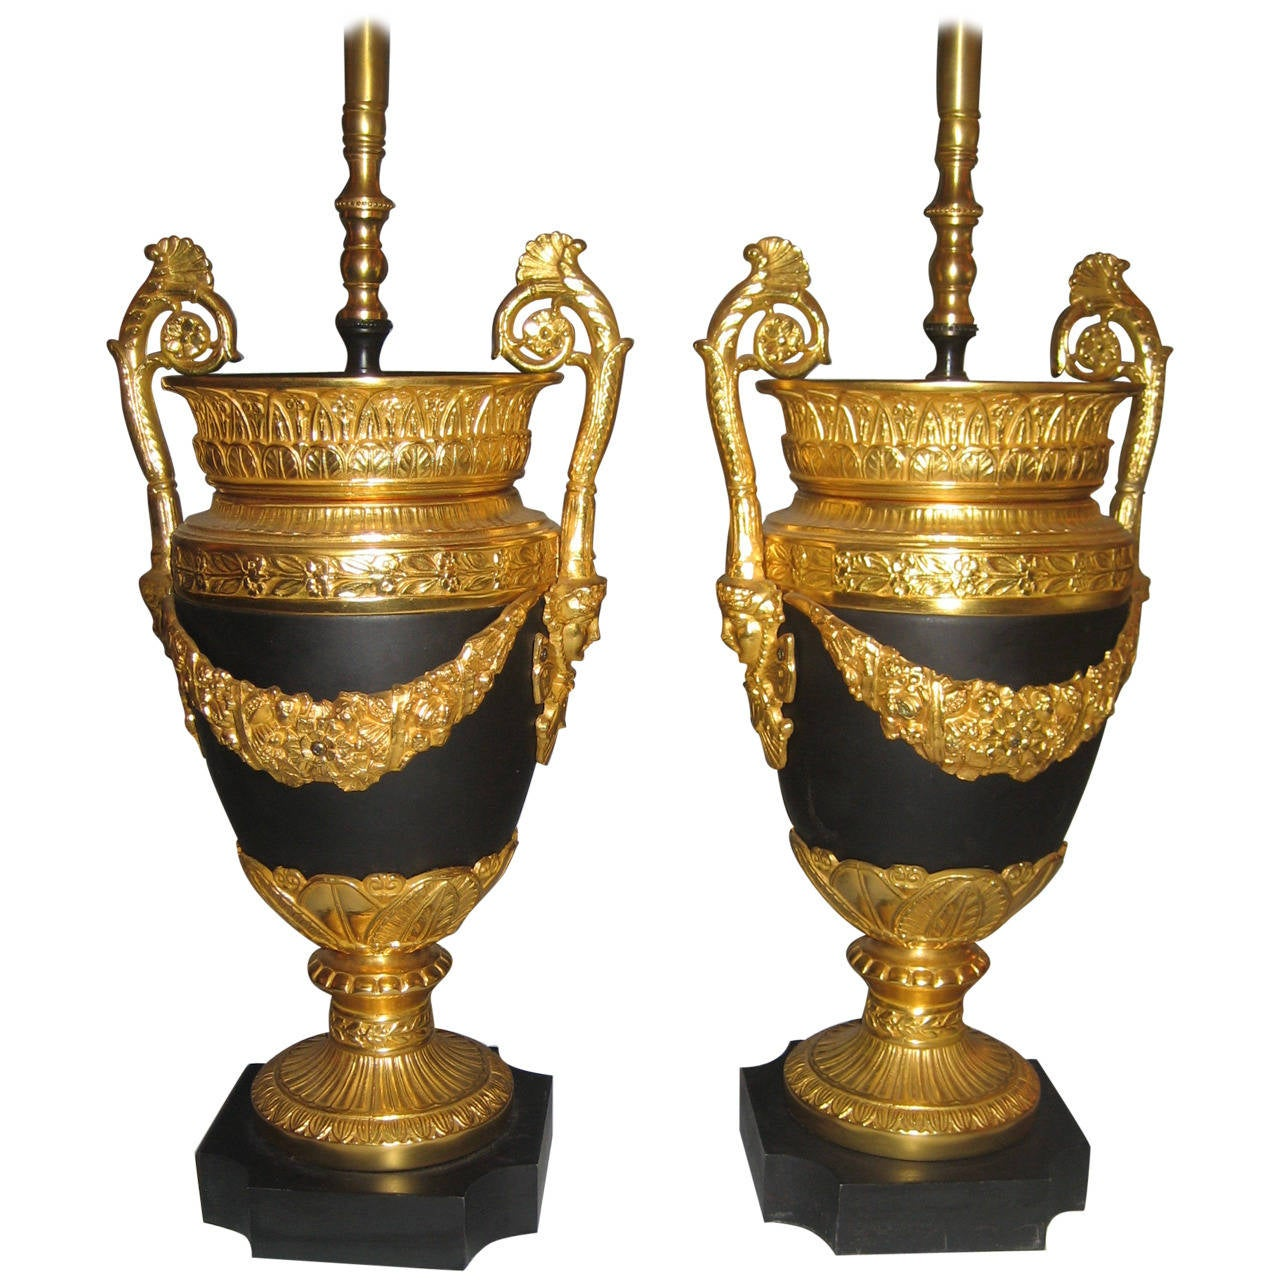 Pair of Antique French Empire Style Gilt Bronze and Patina Bronze Lamps